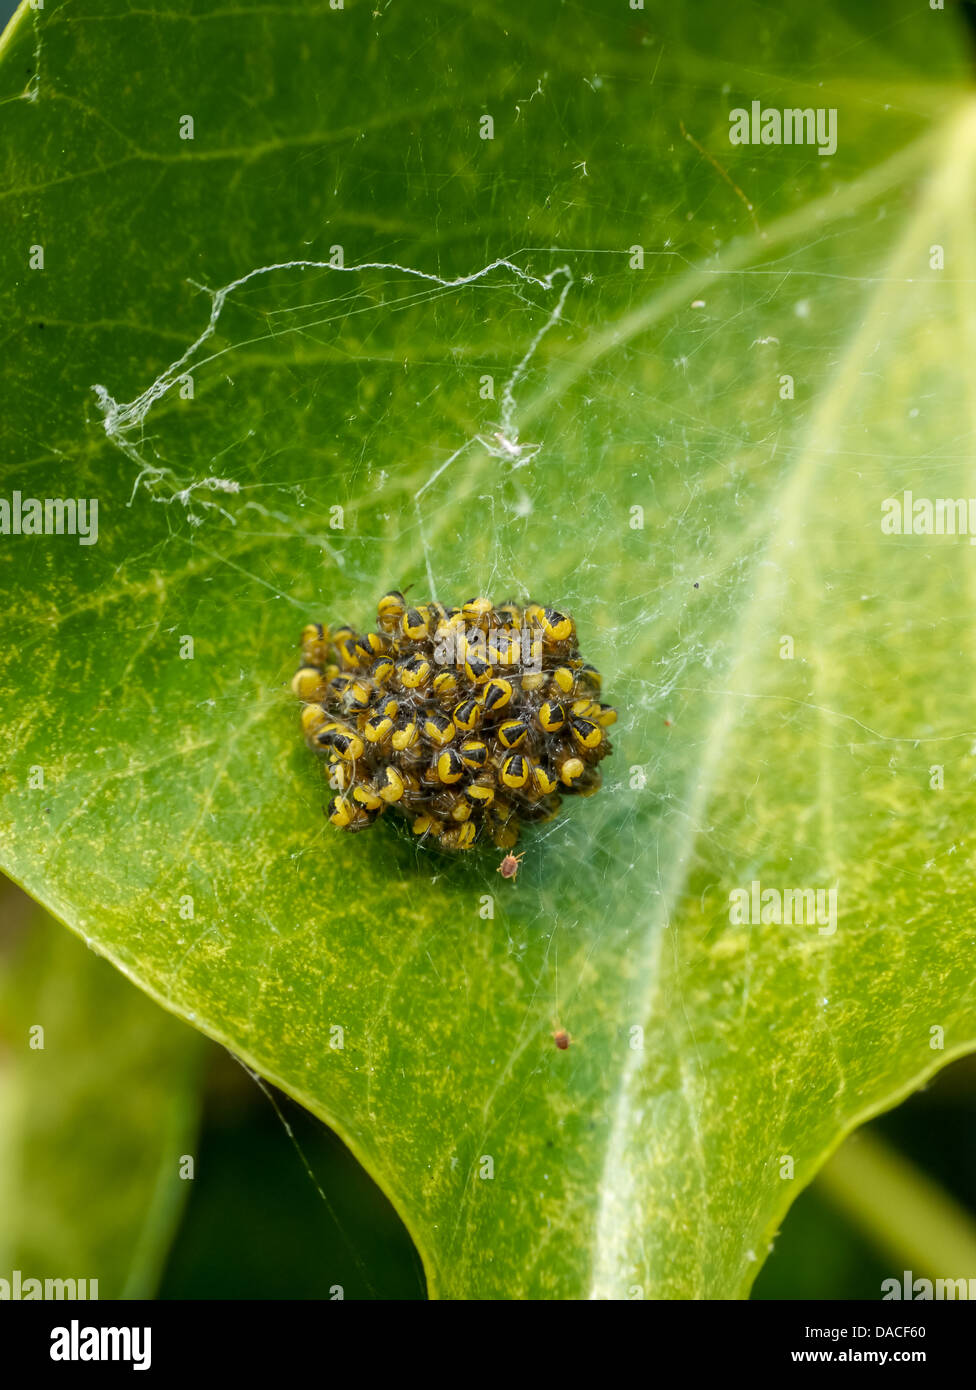 A Nest of Garden Spider spiderlings on a leaf - Stock Image